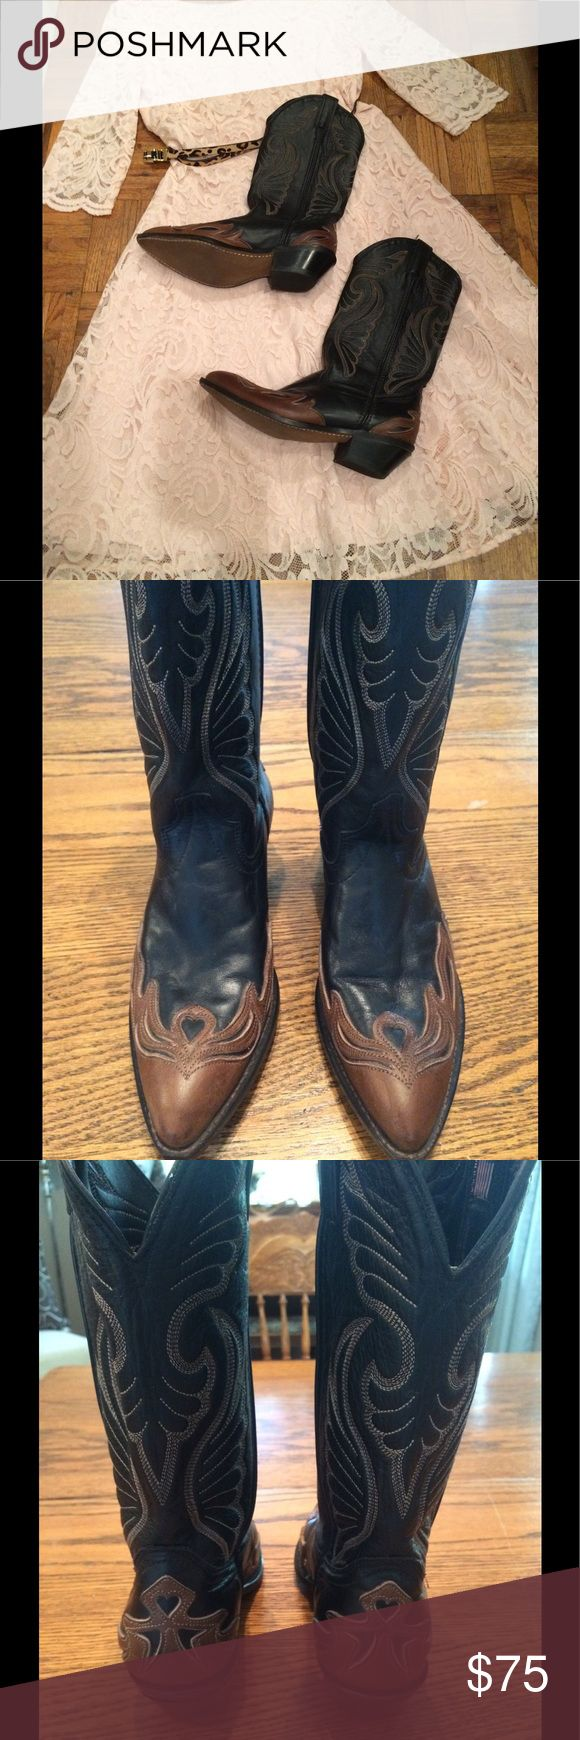 """Laredo Ladies Western Leather Boots Beautiful shape Laredo leather Western Boots size 8 M. Black with brown cut out leather at toe and heel and Cream/tan stitching  13"""" tall. Pointed toe. Very light signs of wear. Heel and sole in great shape. Good with the Boho look! Laredo Shoes Heeled Boots"""